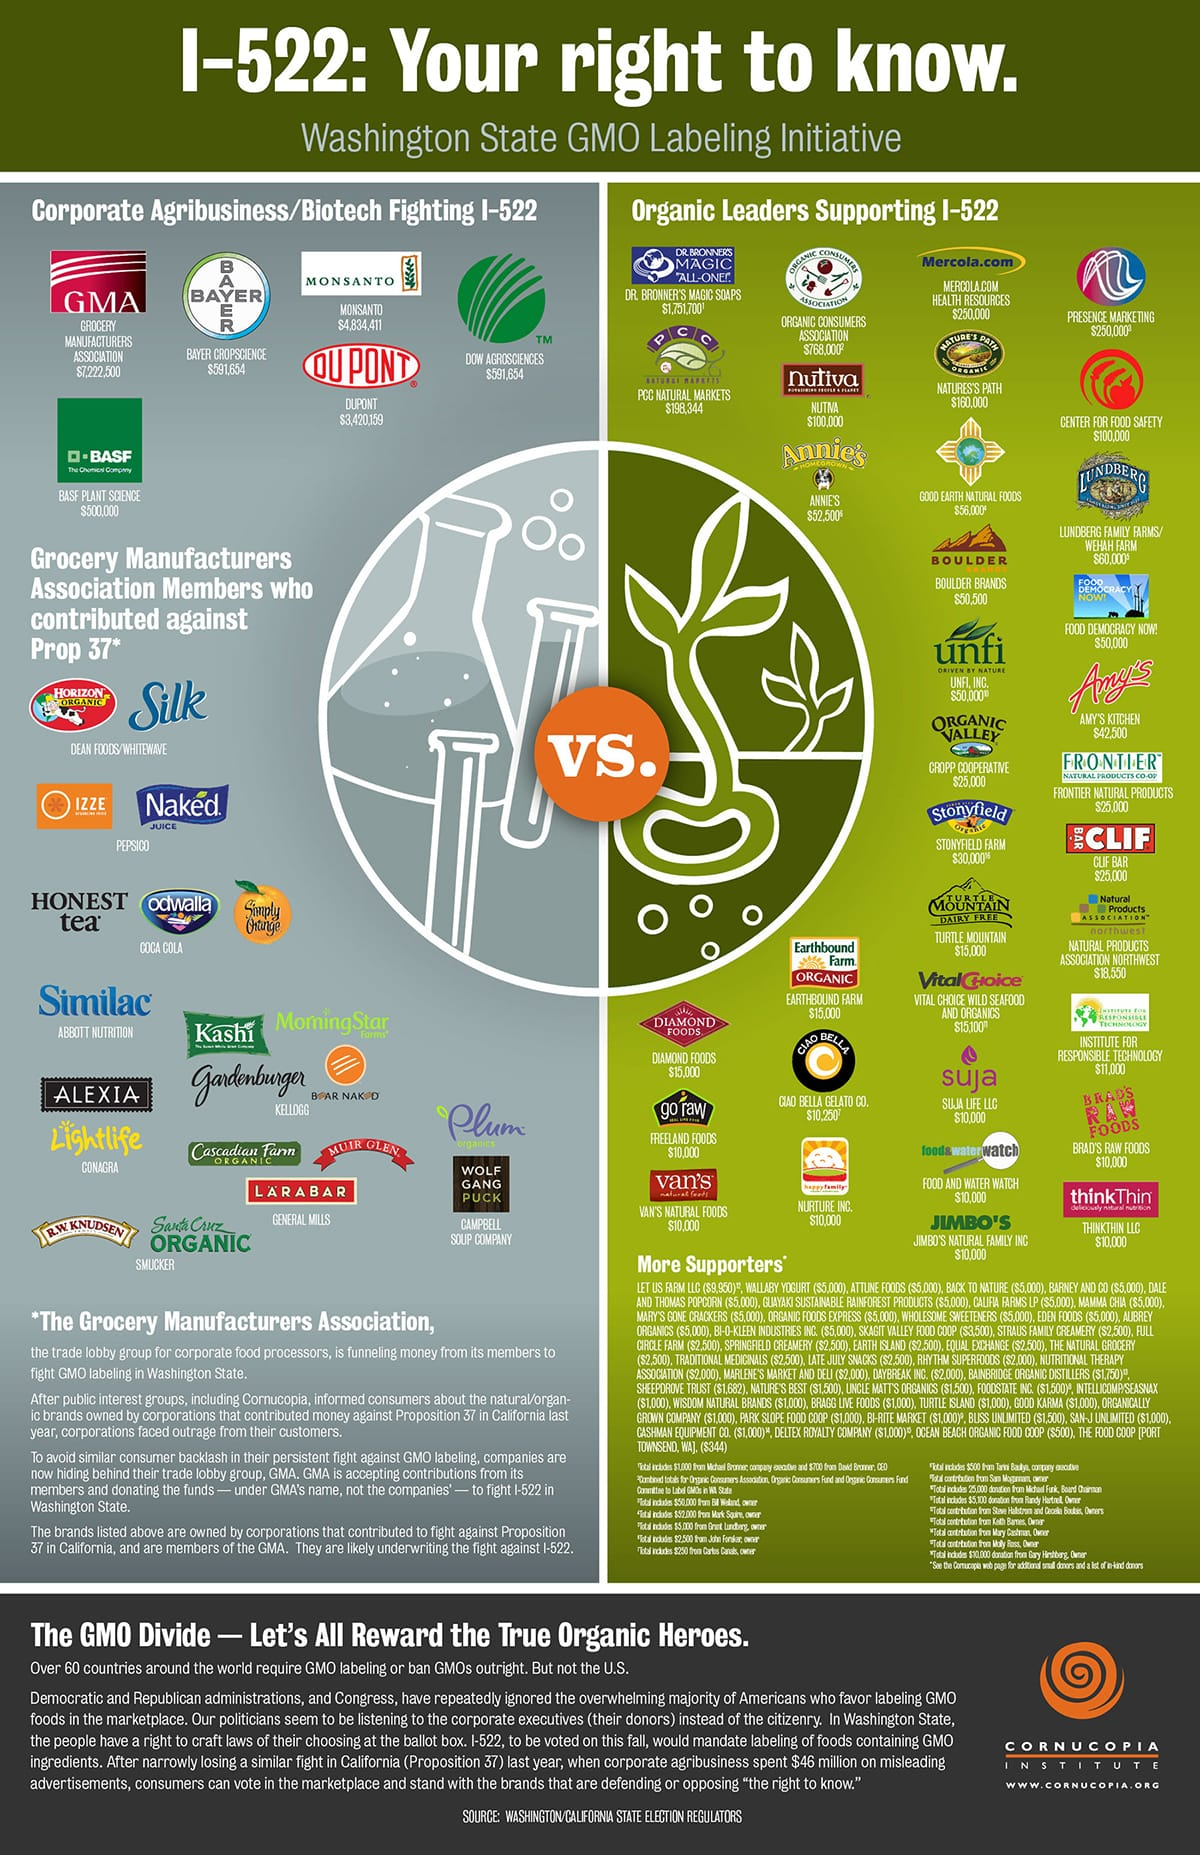 Cash Pooling Youtube Biotech Attack Gmo Labeling In Wa Organic Brands Hide